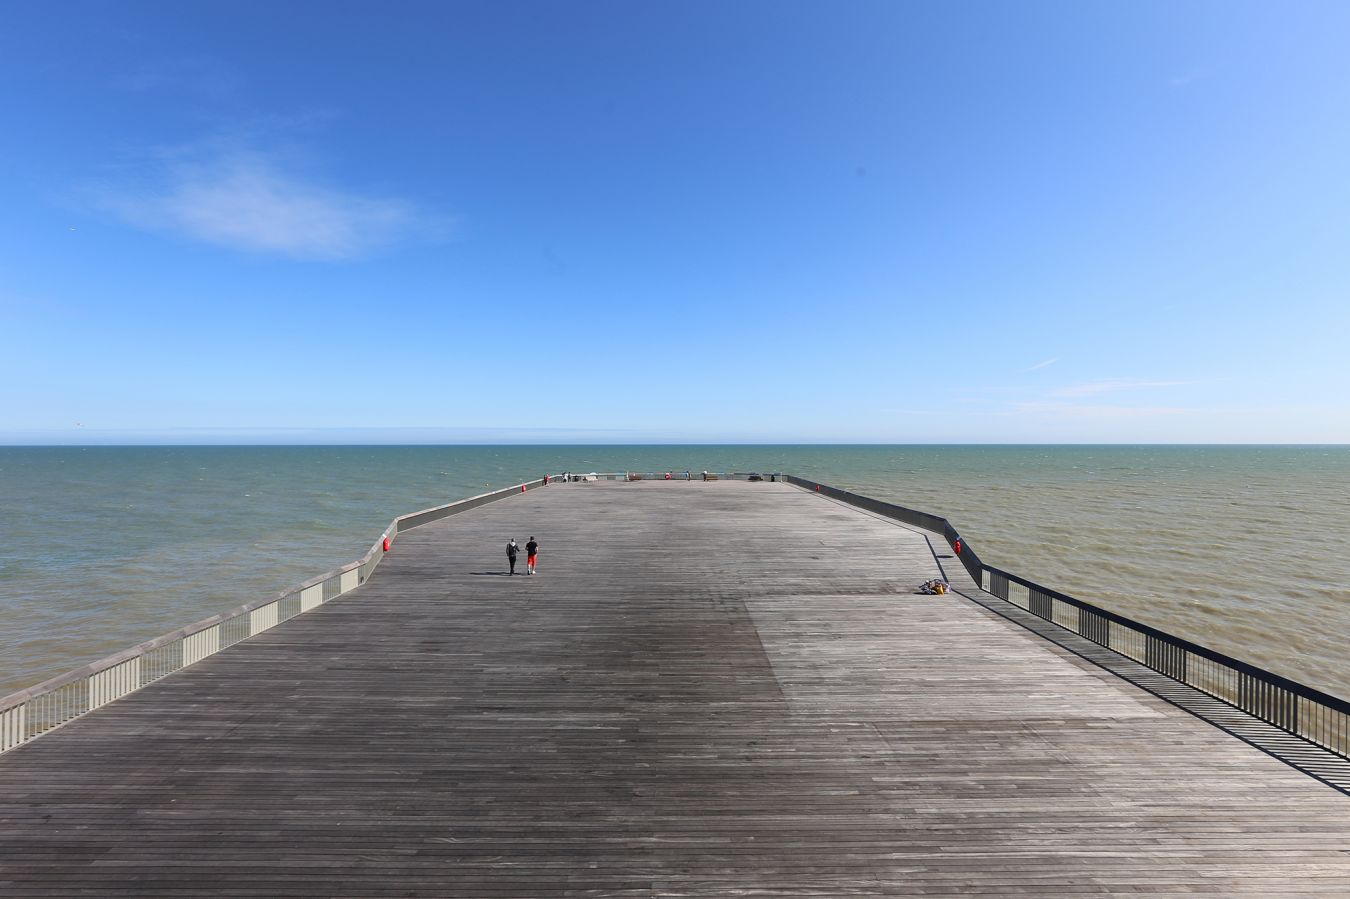 The newly designed pier provides 11,720 square metres for a variety of public uses. Picture credit: Alex de Rijke